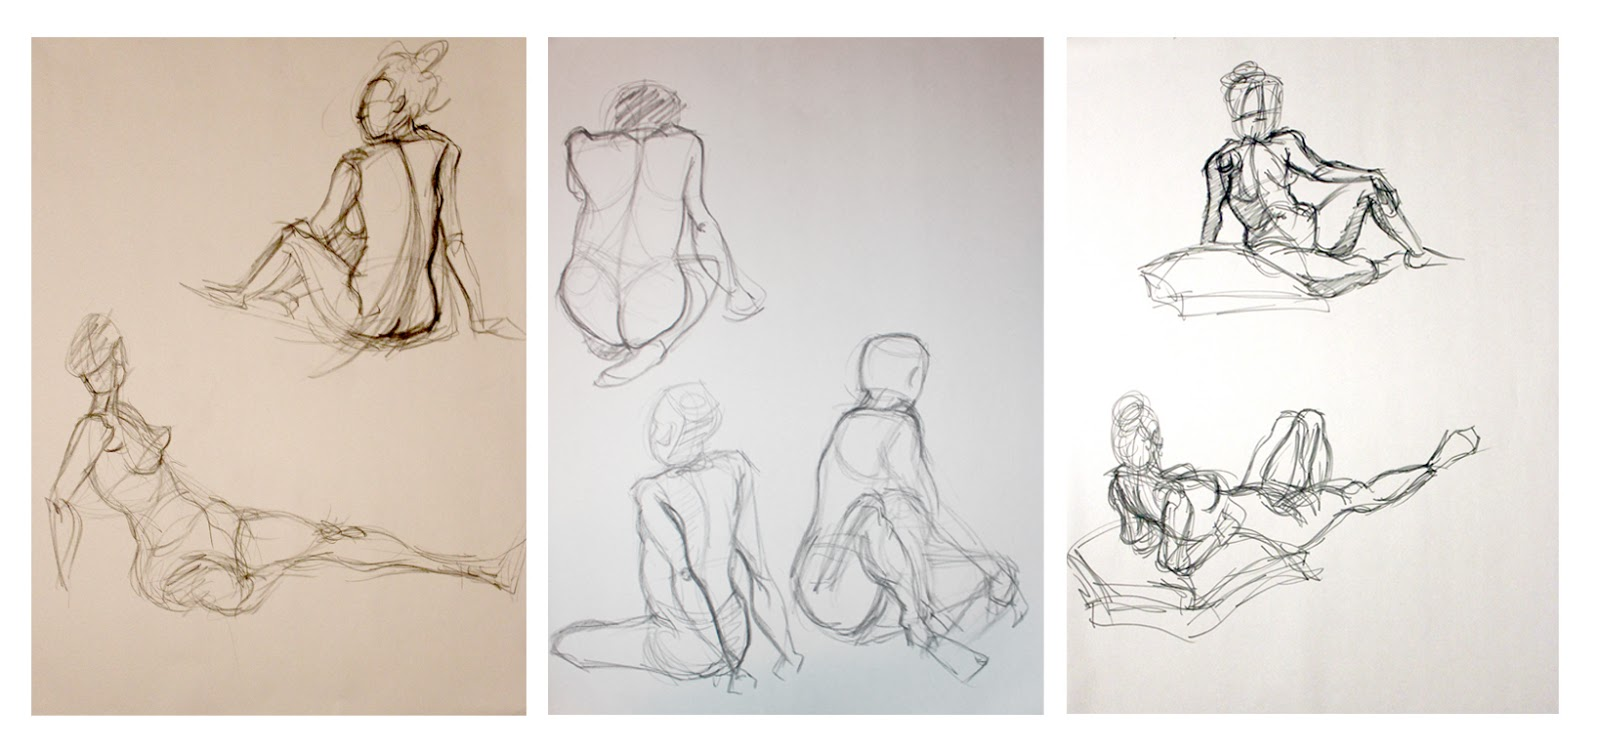 Zigtuney Art Blog: Figure Drawing/Anatomy